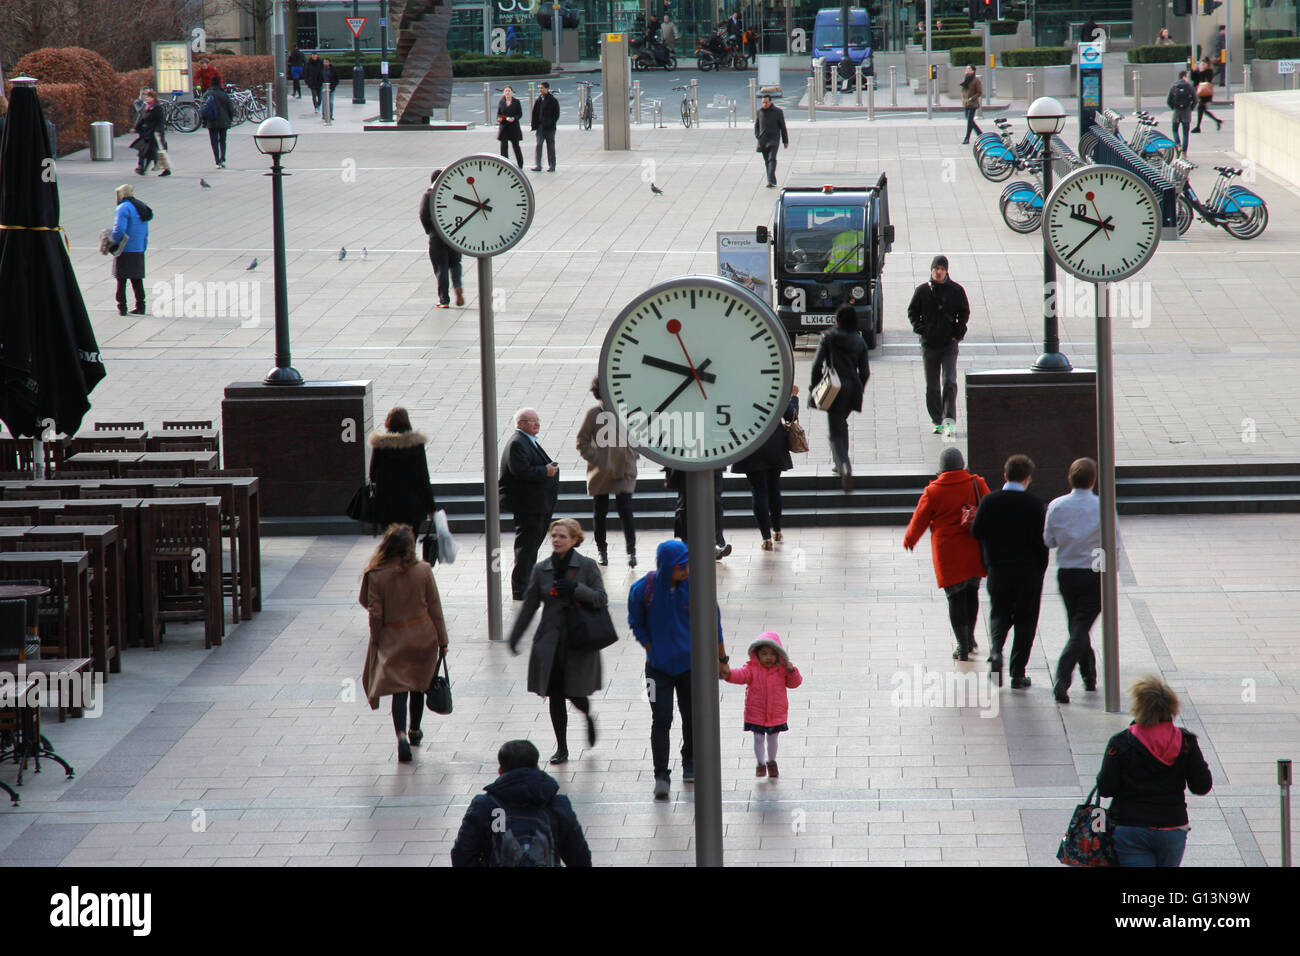 Pedestrians walking to work through Reuters Square, Canary Wharf, London Stock Photo